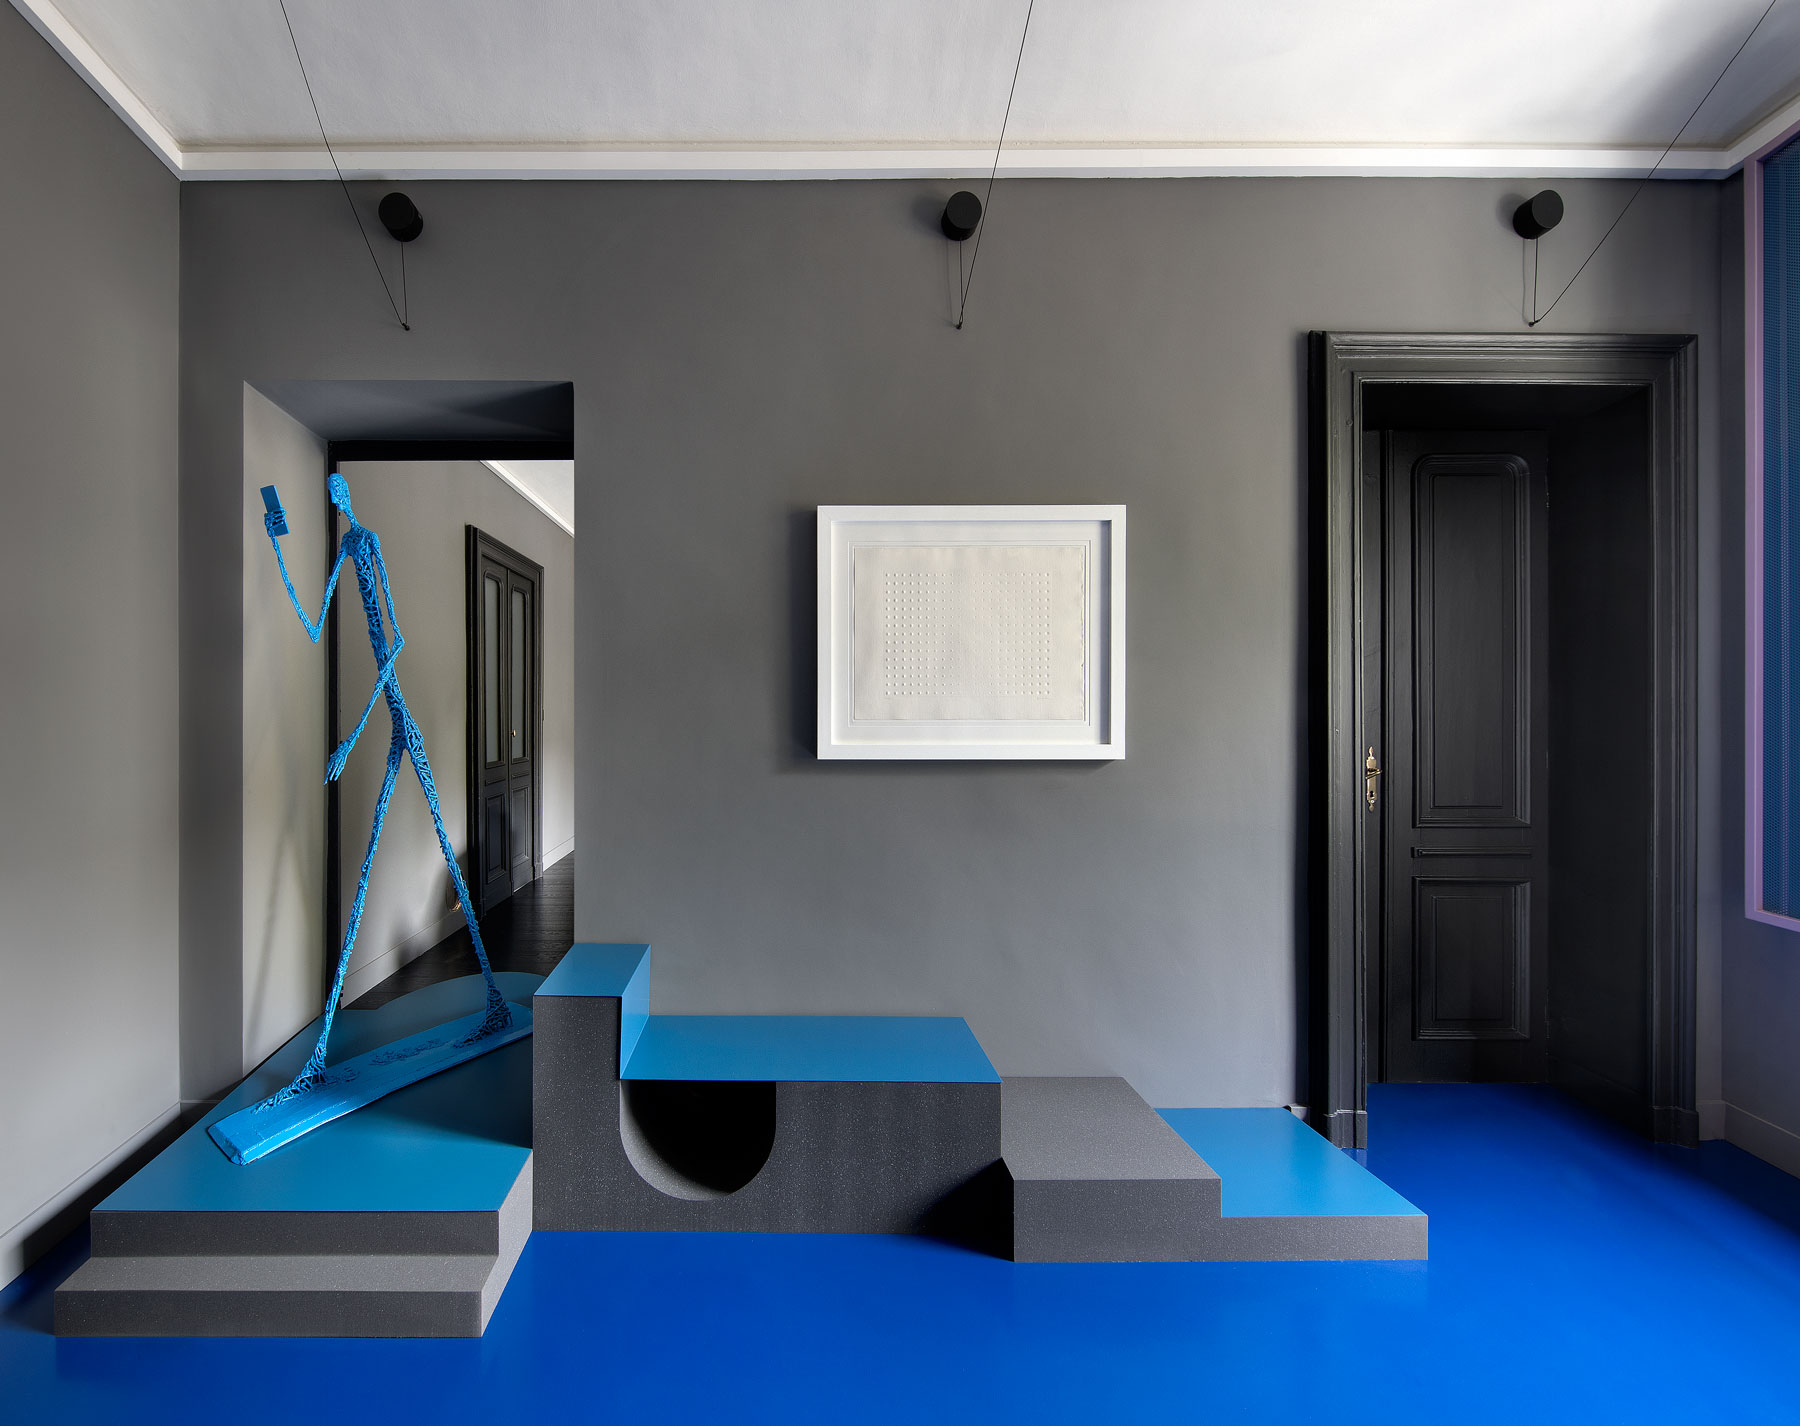 Sceg Architetti Studio Agora Law Office Interior Design Photo Barbara Corsico | Yellowtrace